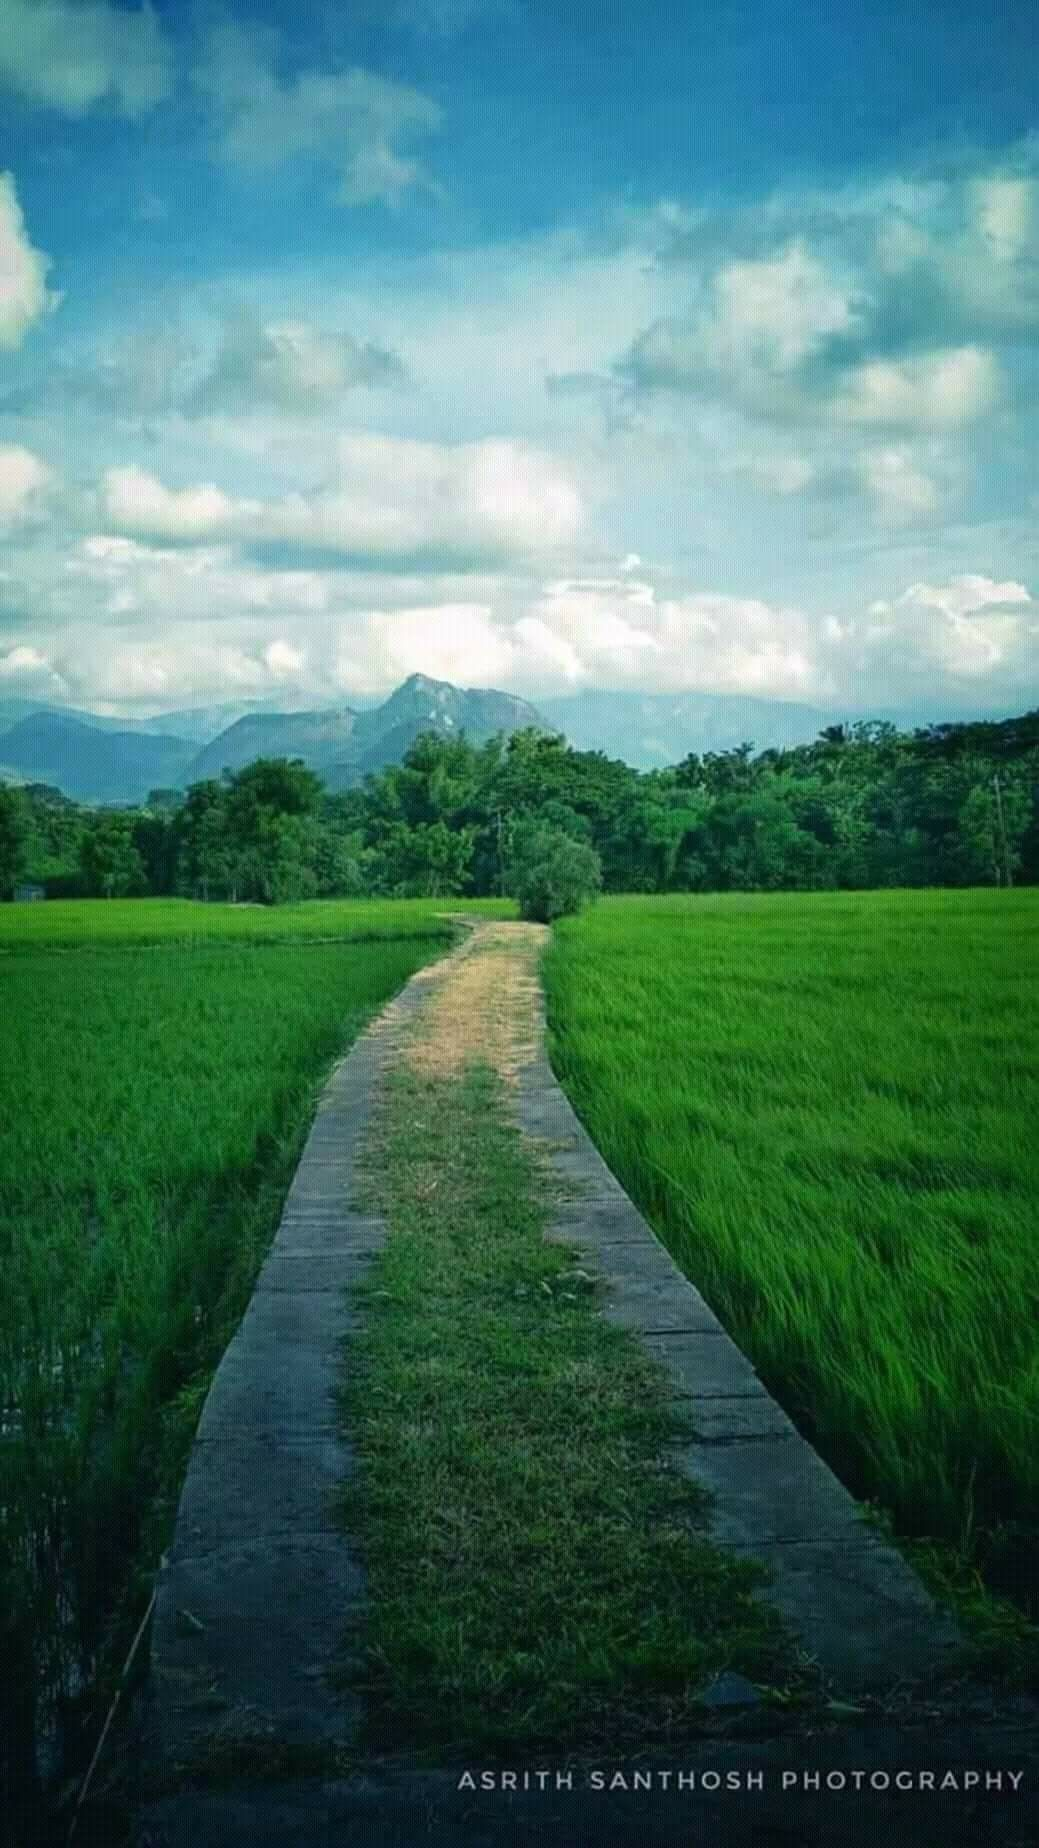 Kerala Paddy Fields Picsart Background Background Images Village Photography